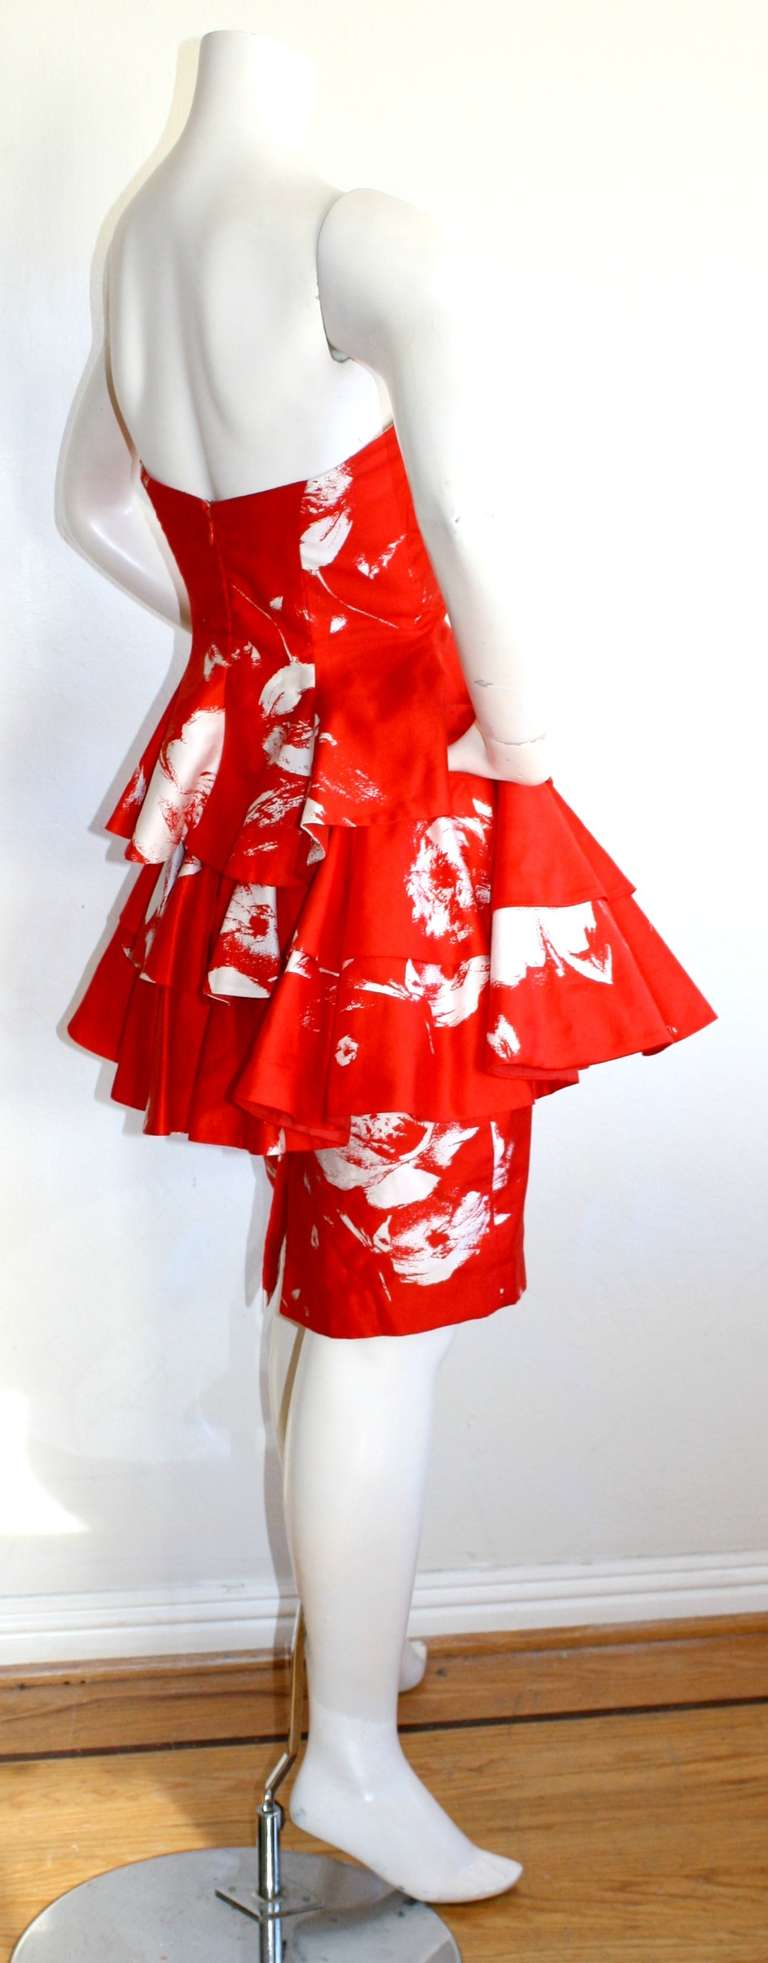 Vintage Barboglio Two Piece Peplum Red Dress Set In Excellent Condition For Sale In San Francisco, CA